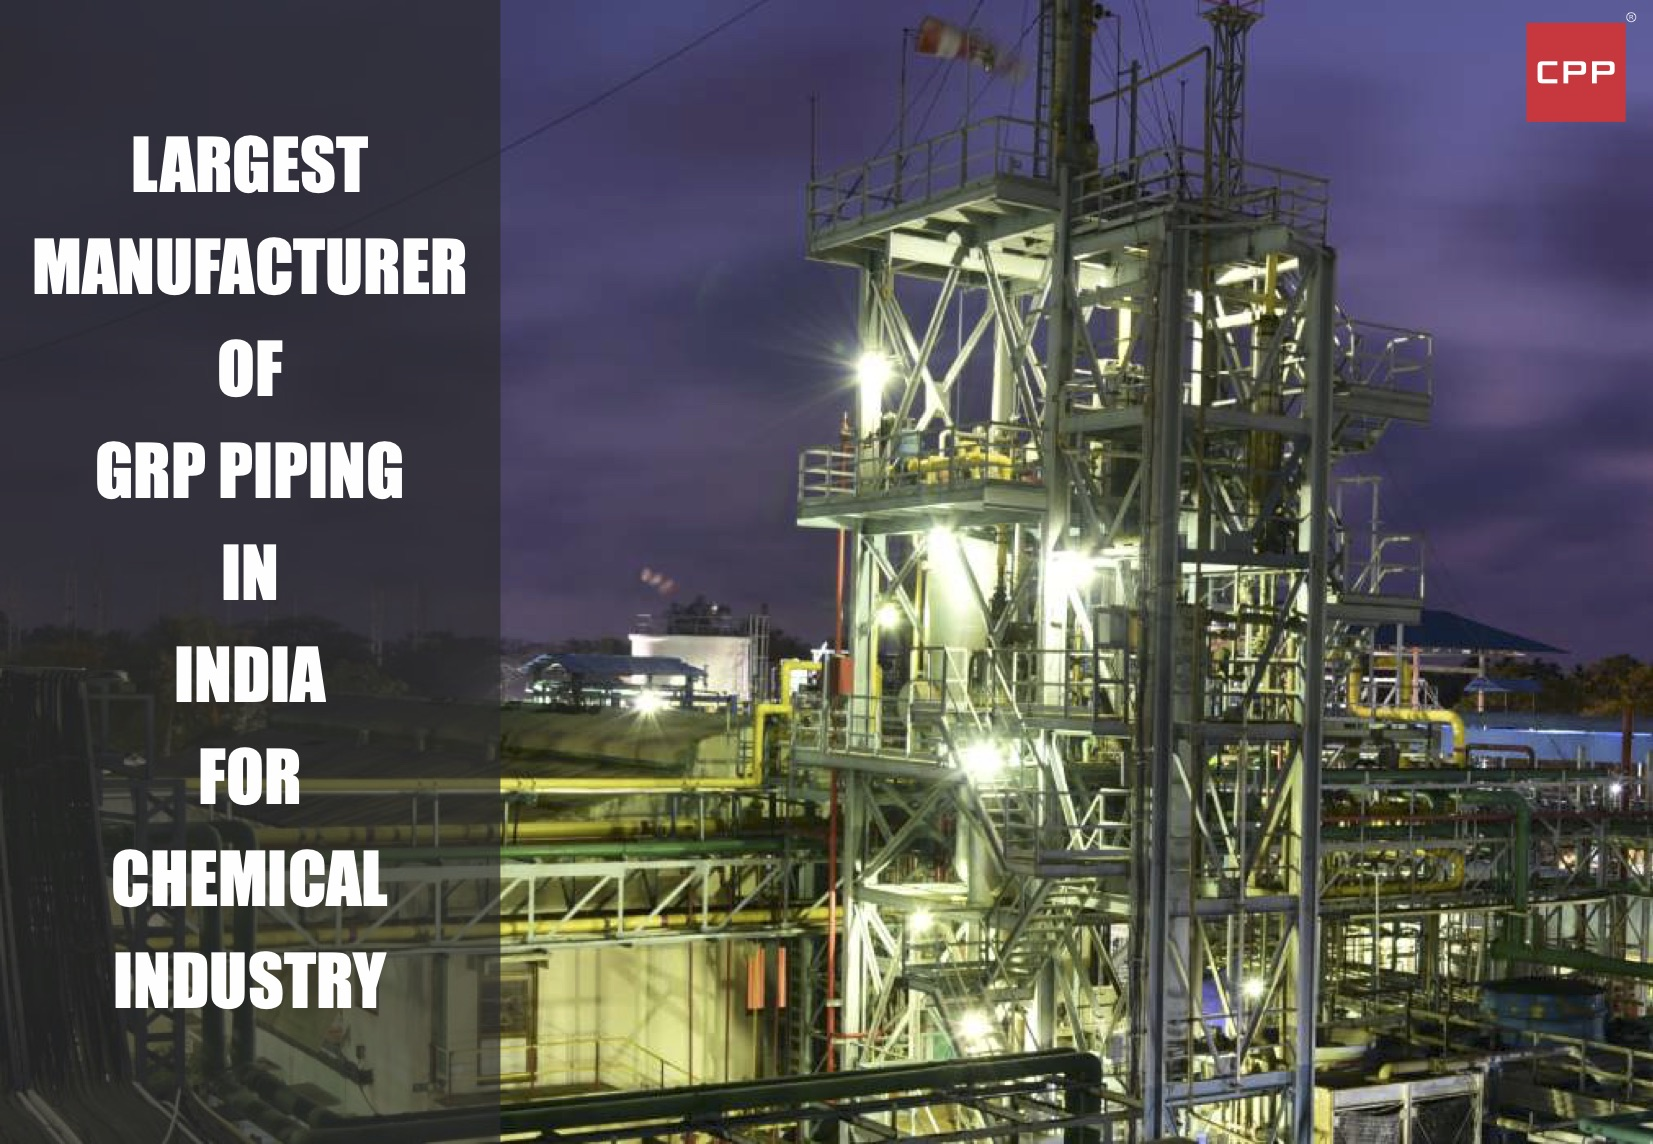 Largest manufacturer of GRP Piping in India for Chemical industry